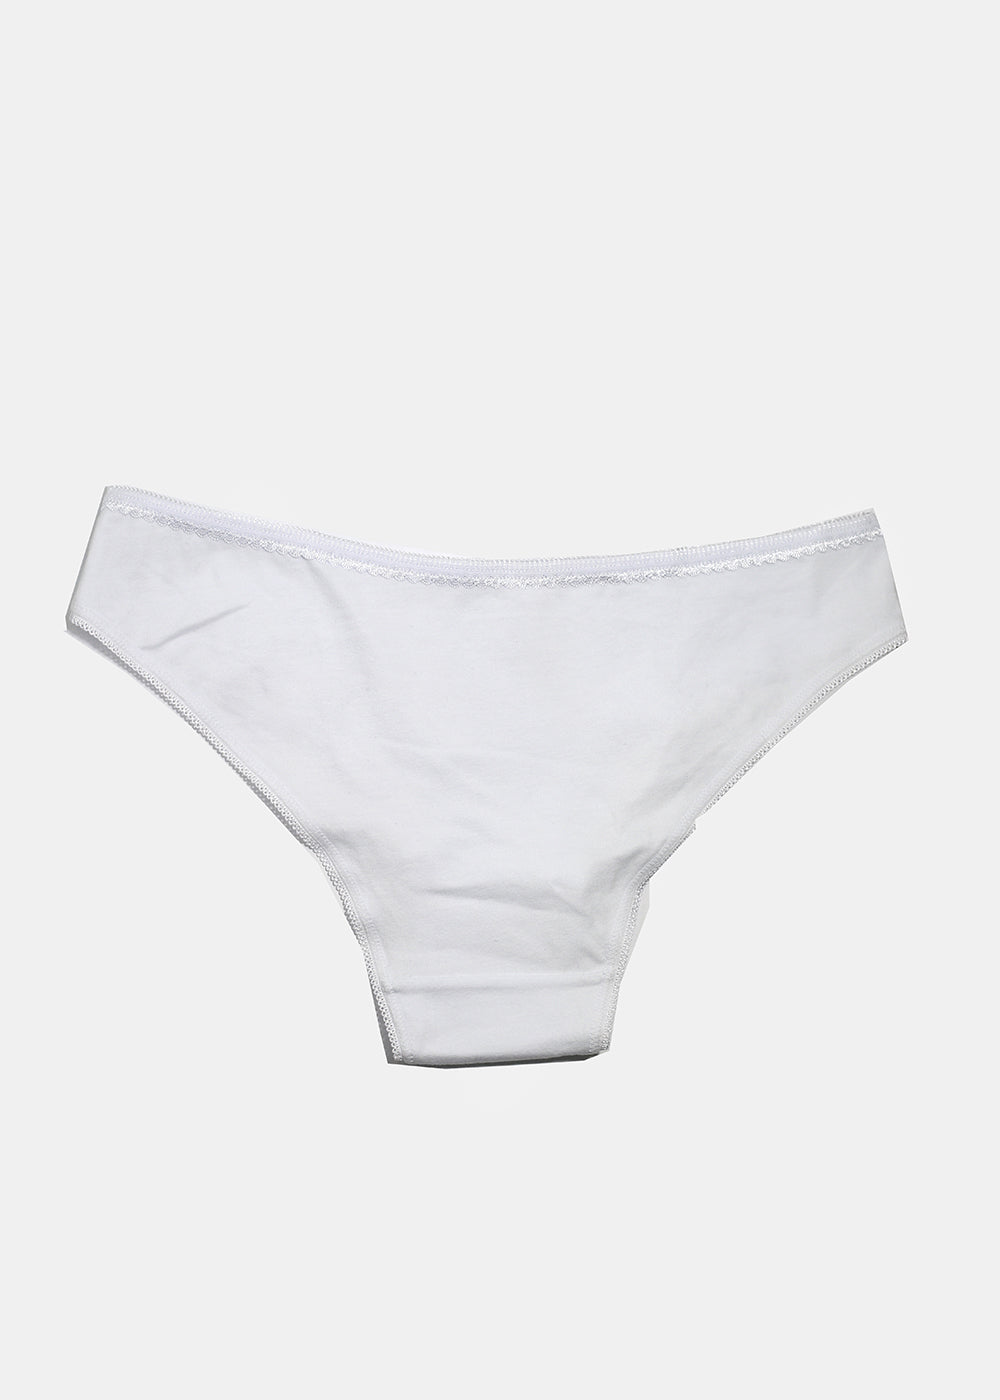 Solid Neutral Brief Panty- White